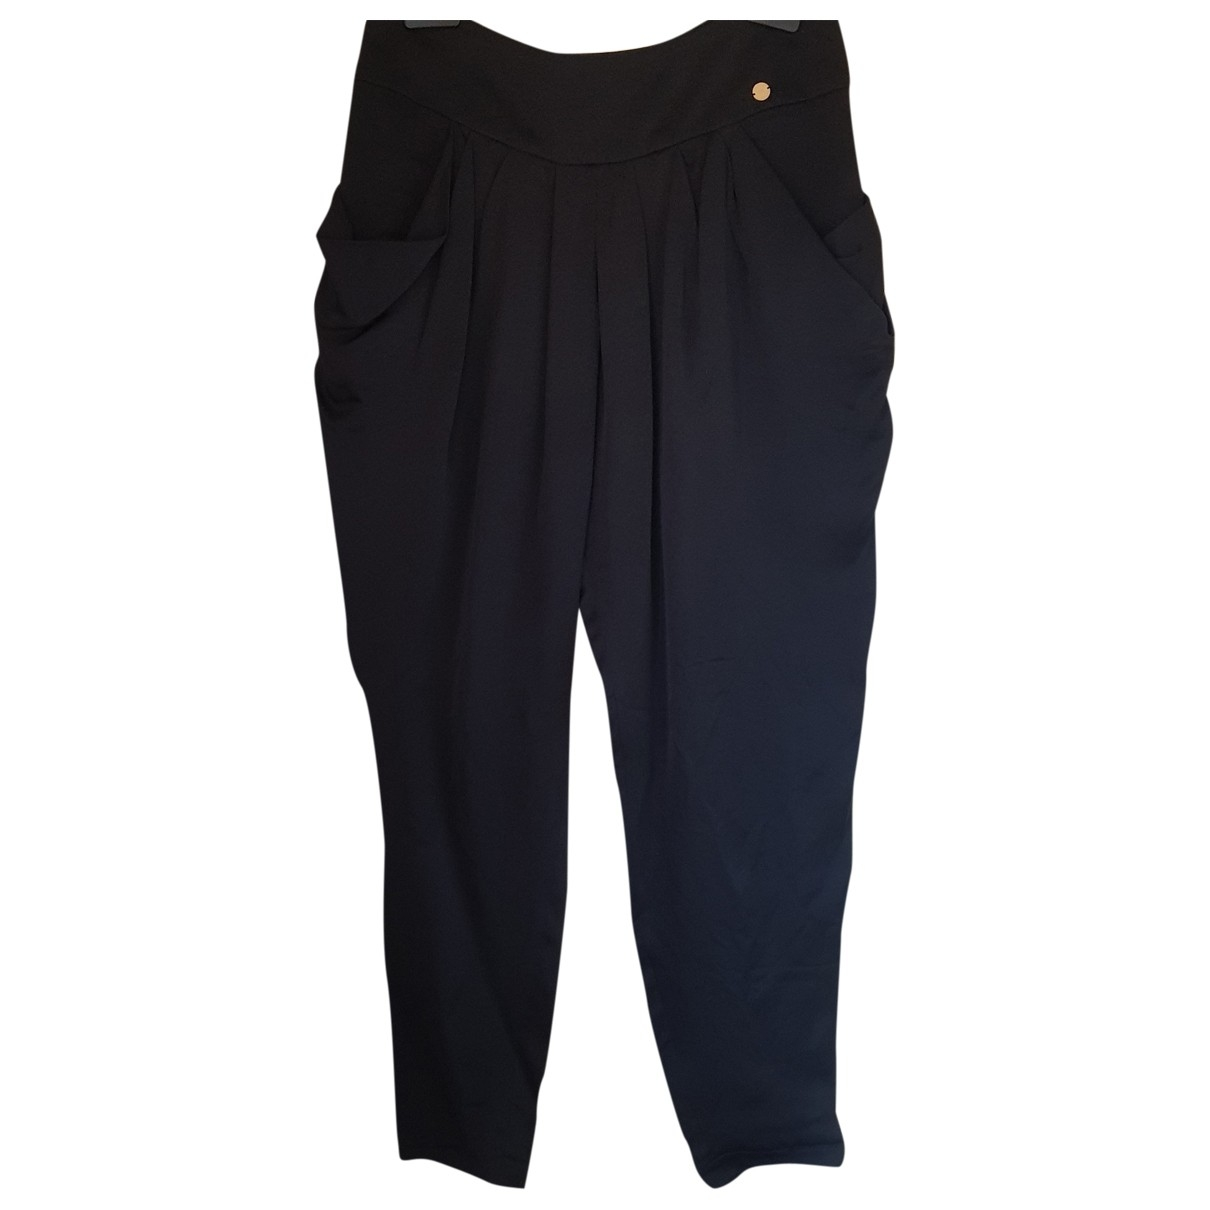 Elisabetta Franchi \N Black Trousers for Women 42 IT